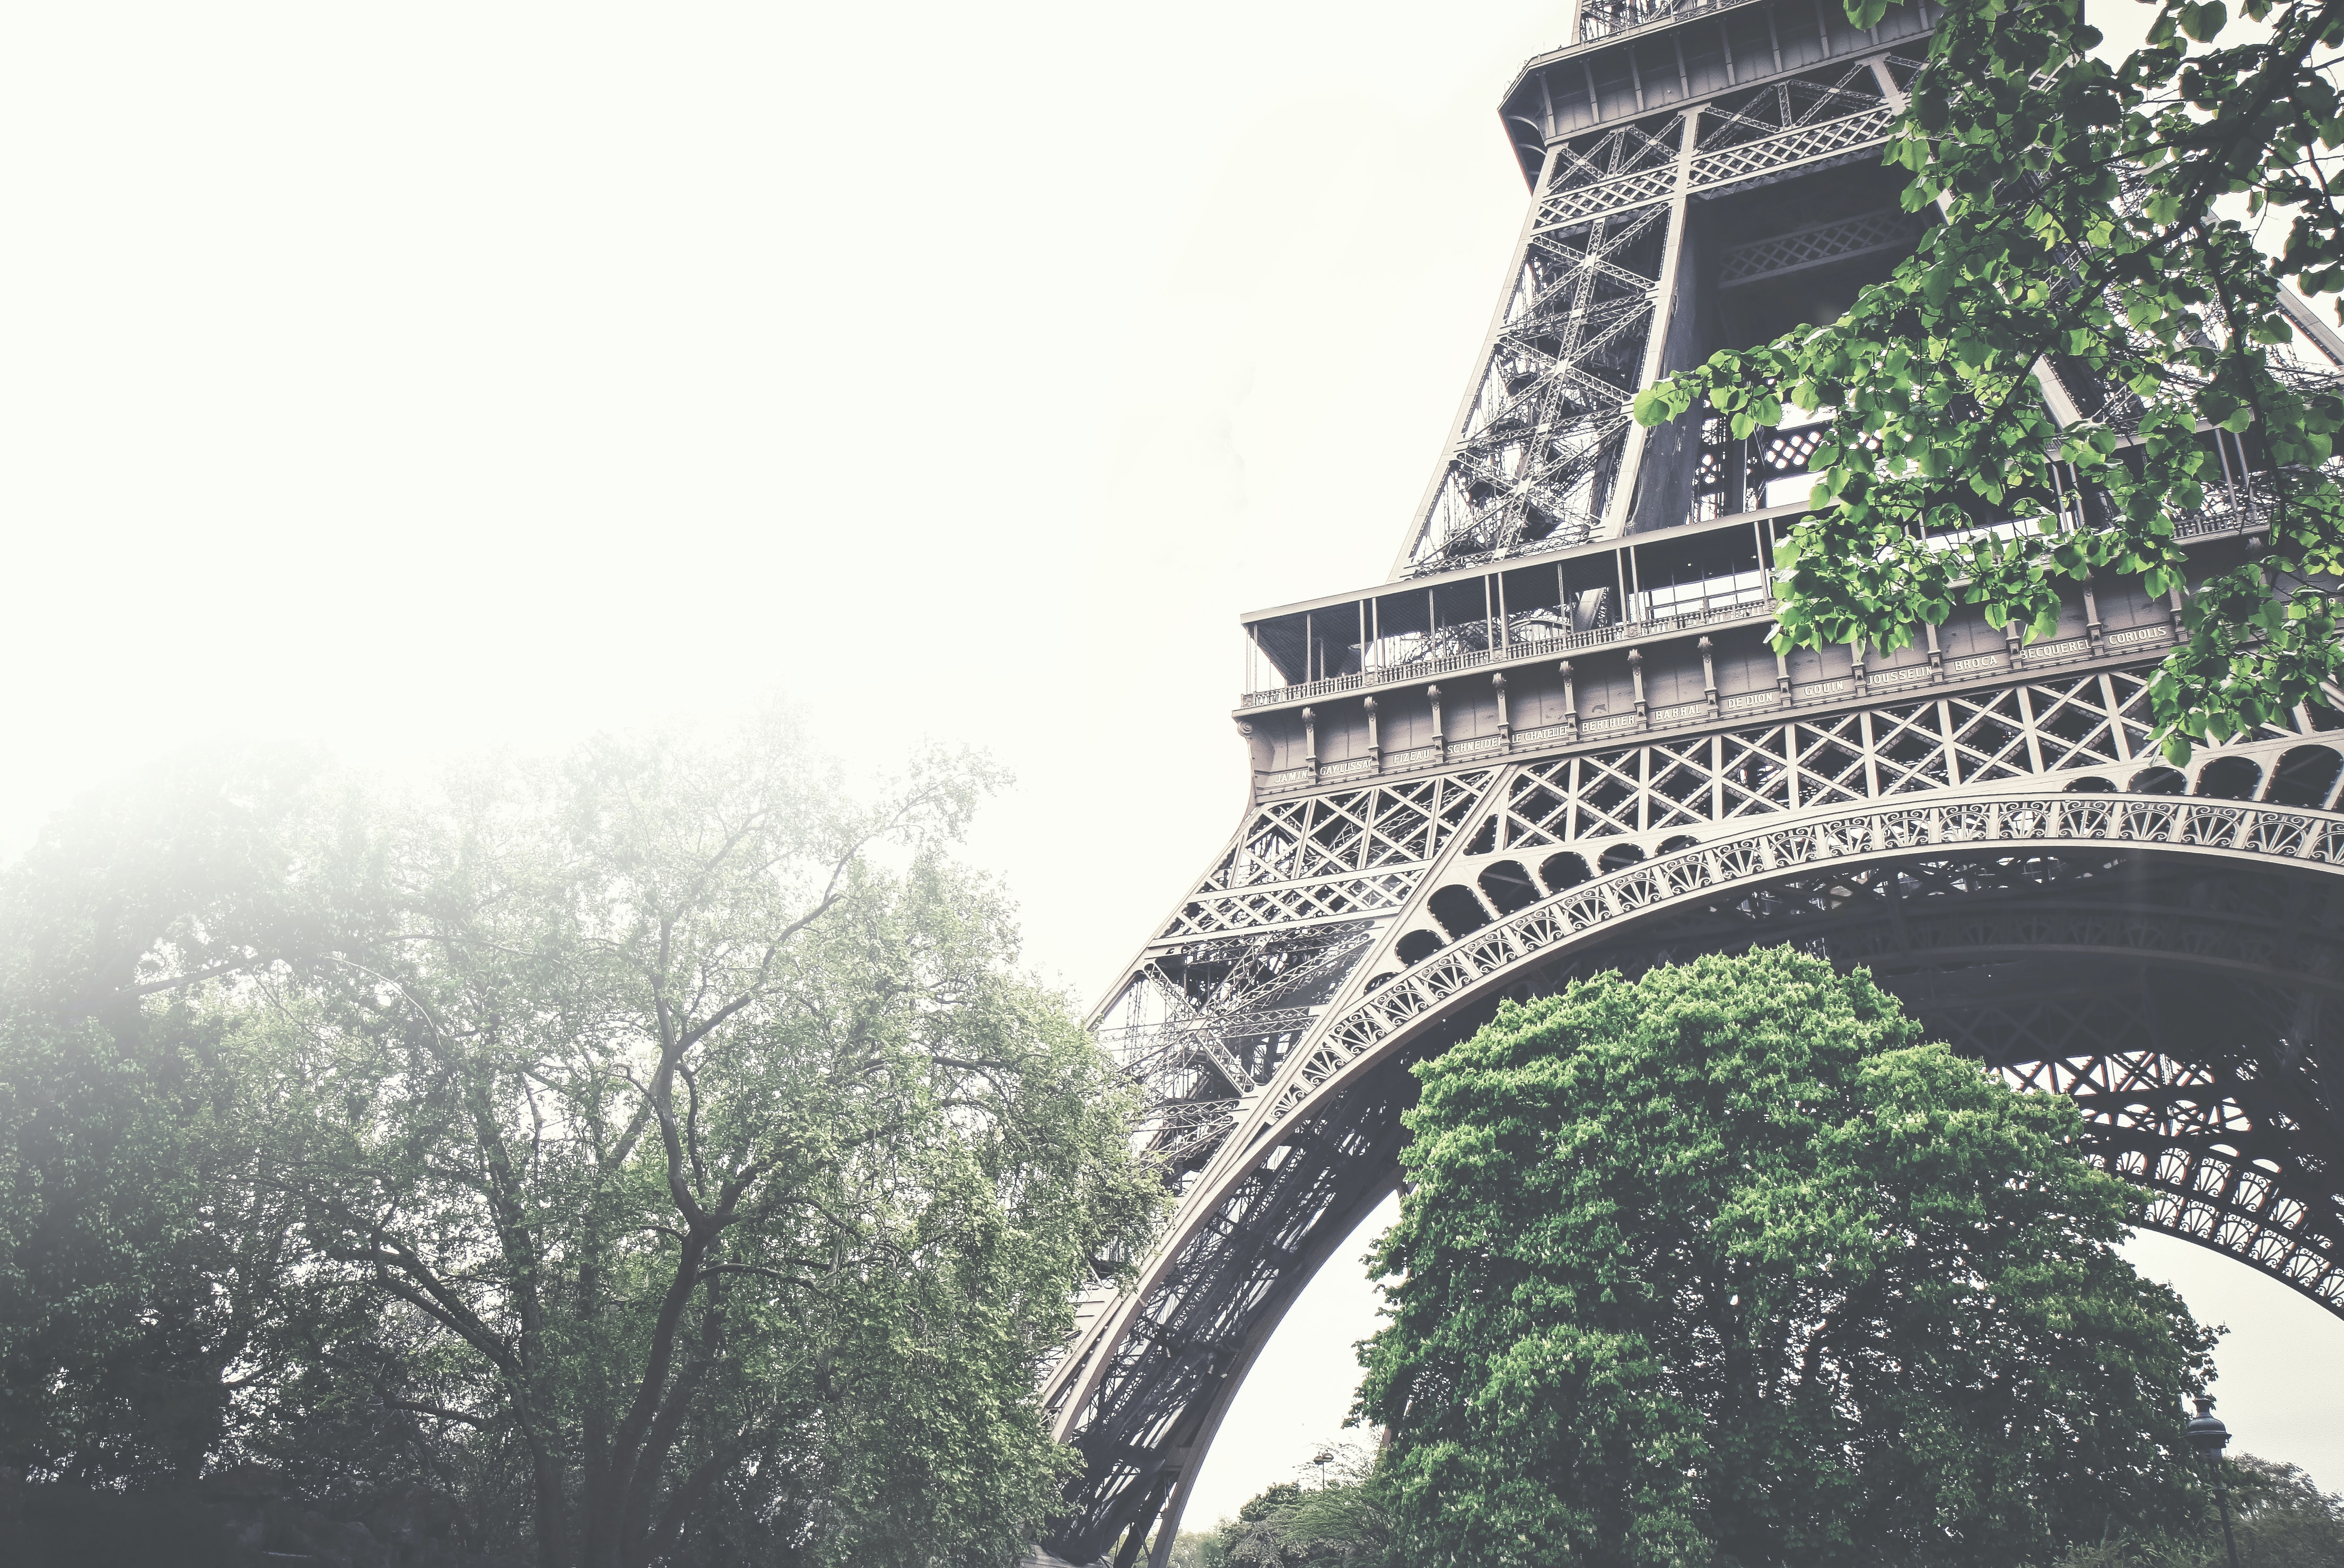 A close-up shot of the Eiffel Tower in Paris with trees surrounding it